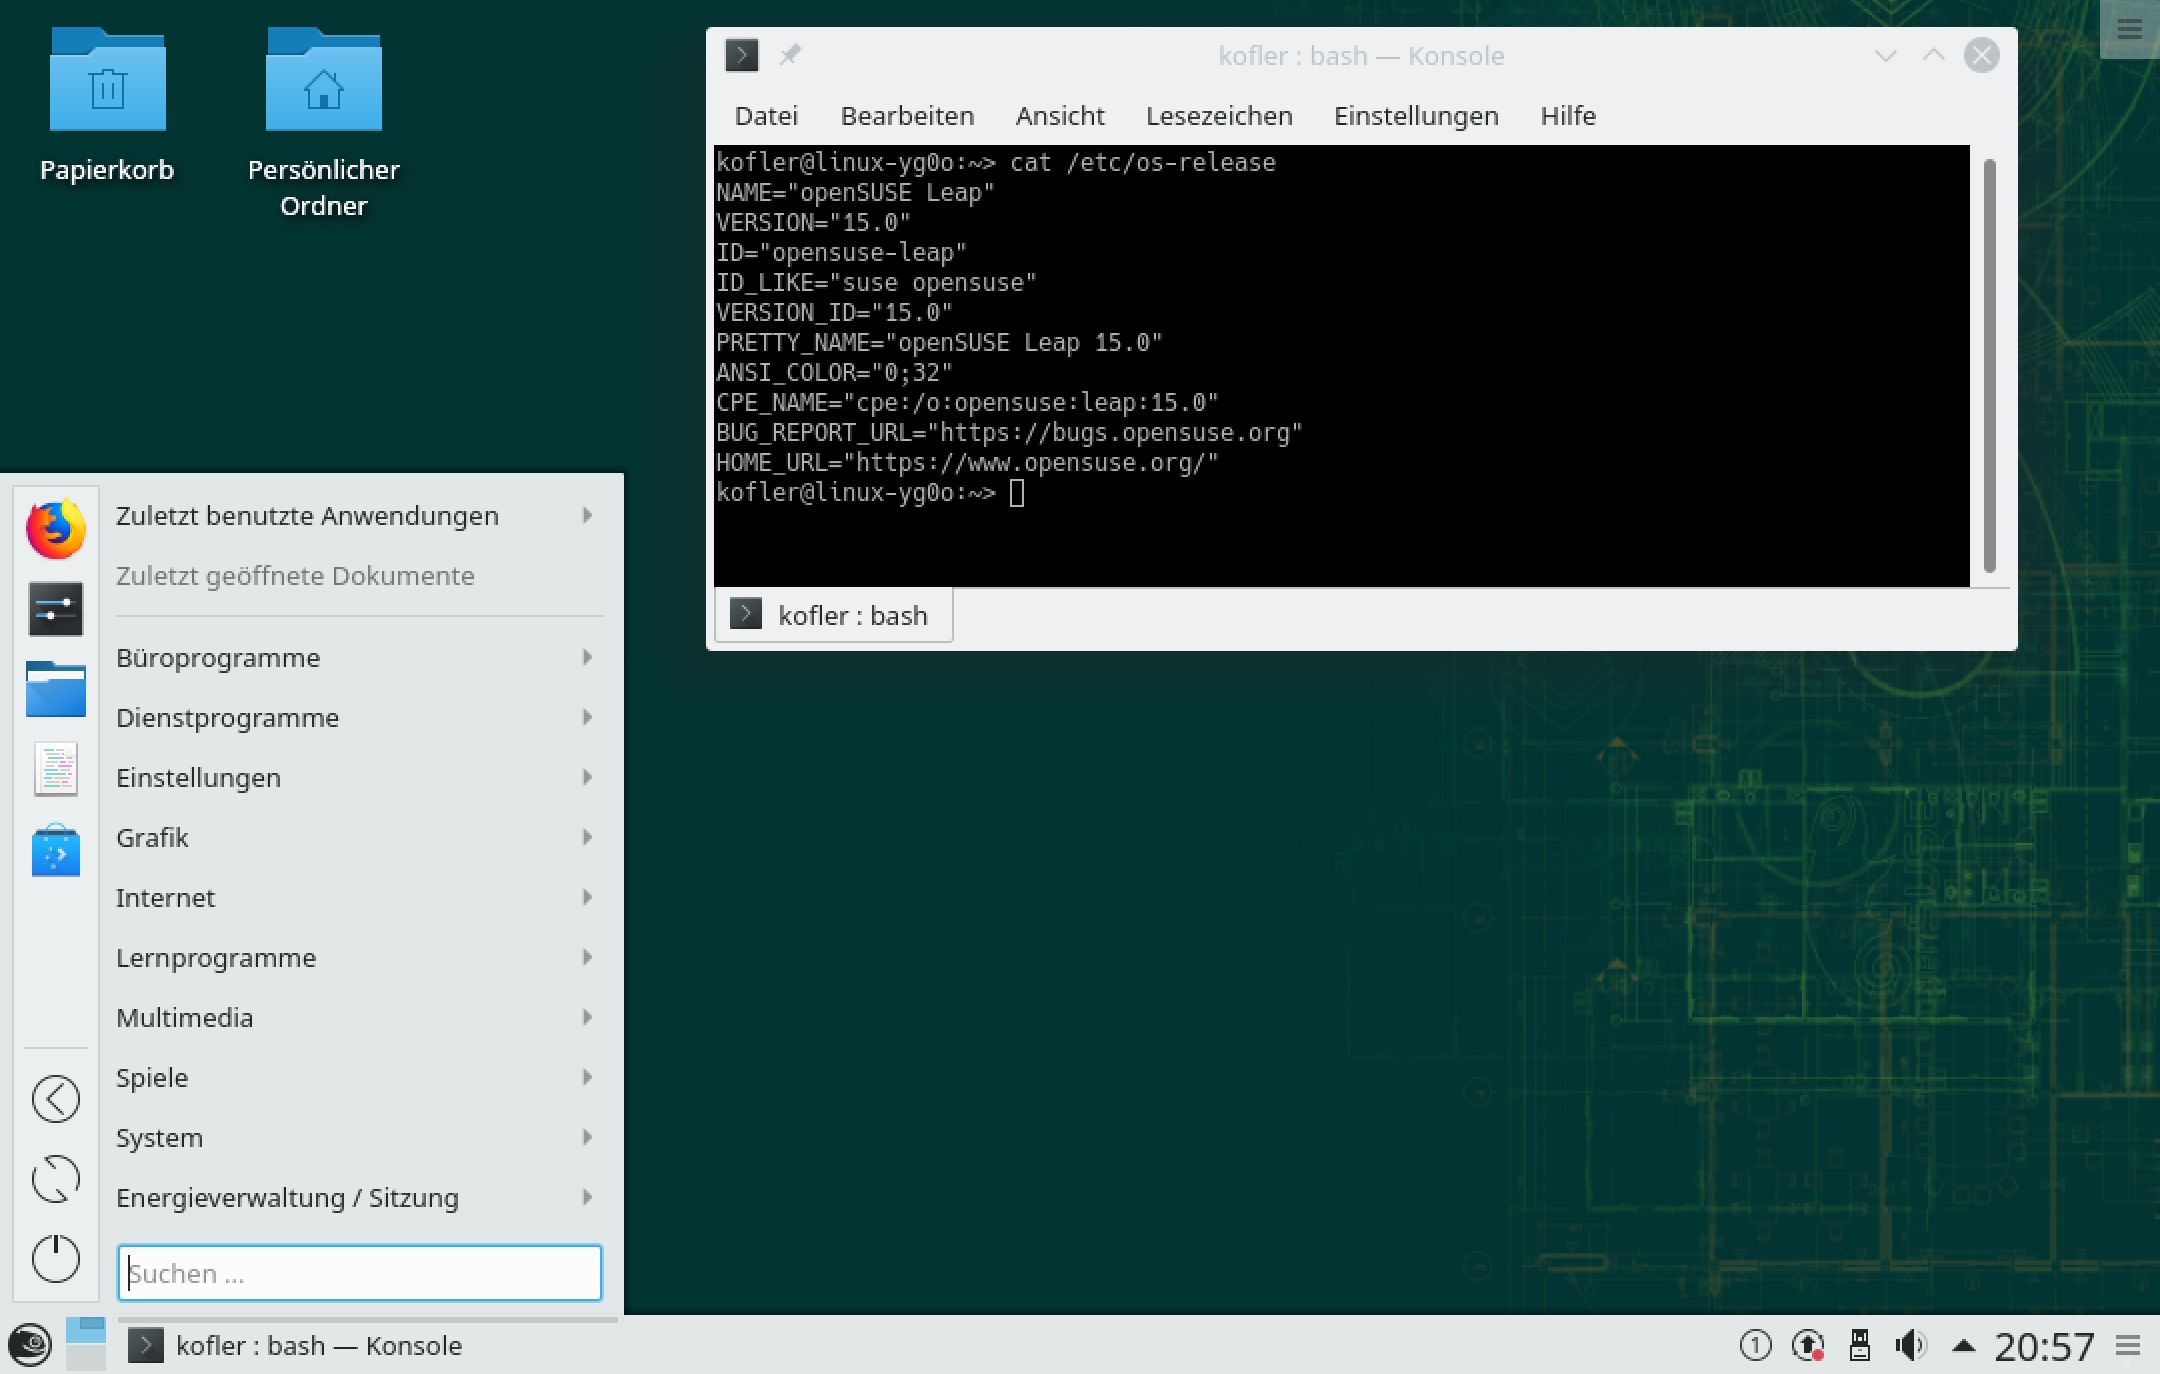 opensuse datei